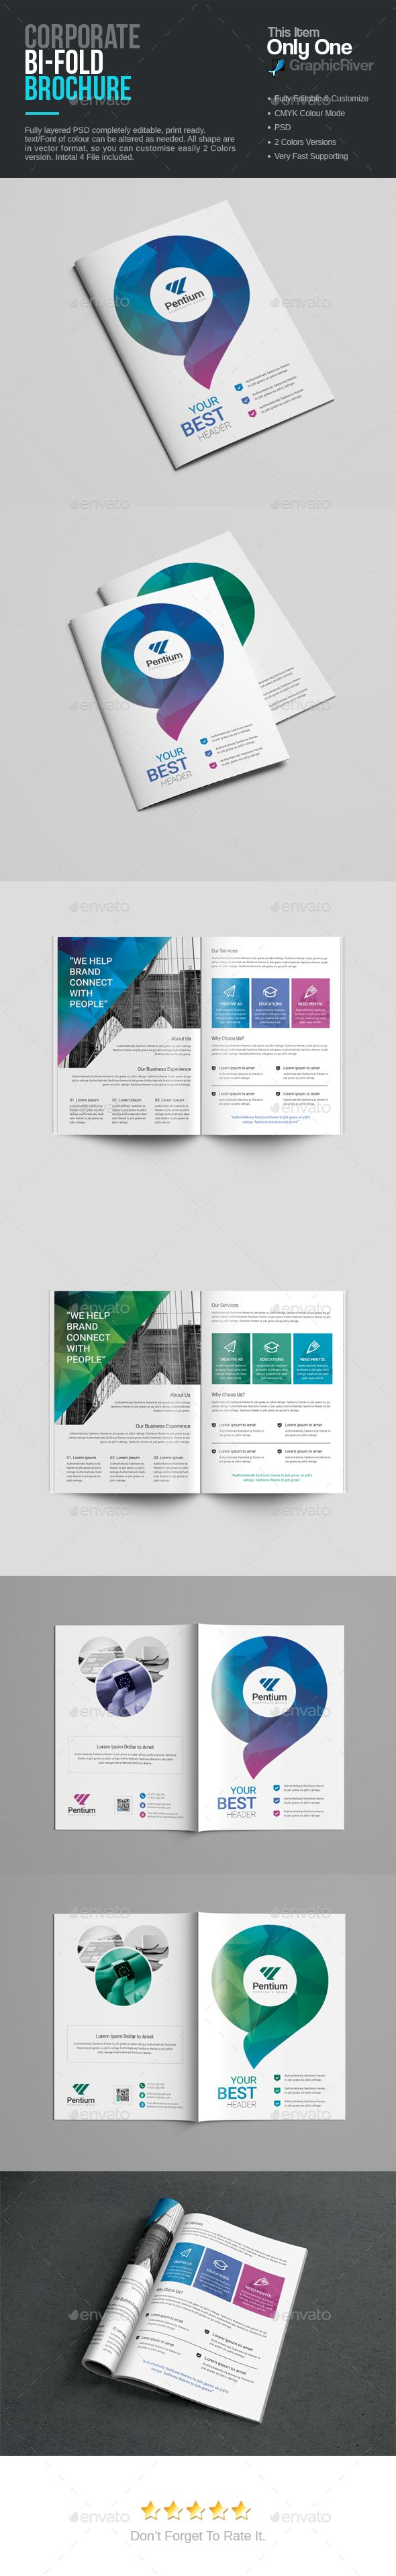 bi fold brochure template publisher - 1000 images about brochure templates on pinterest